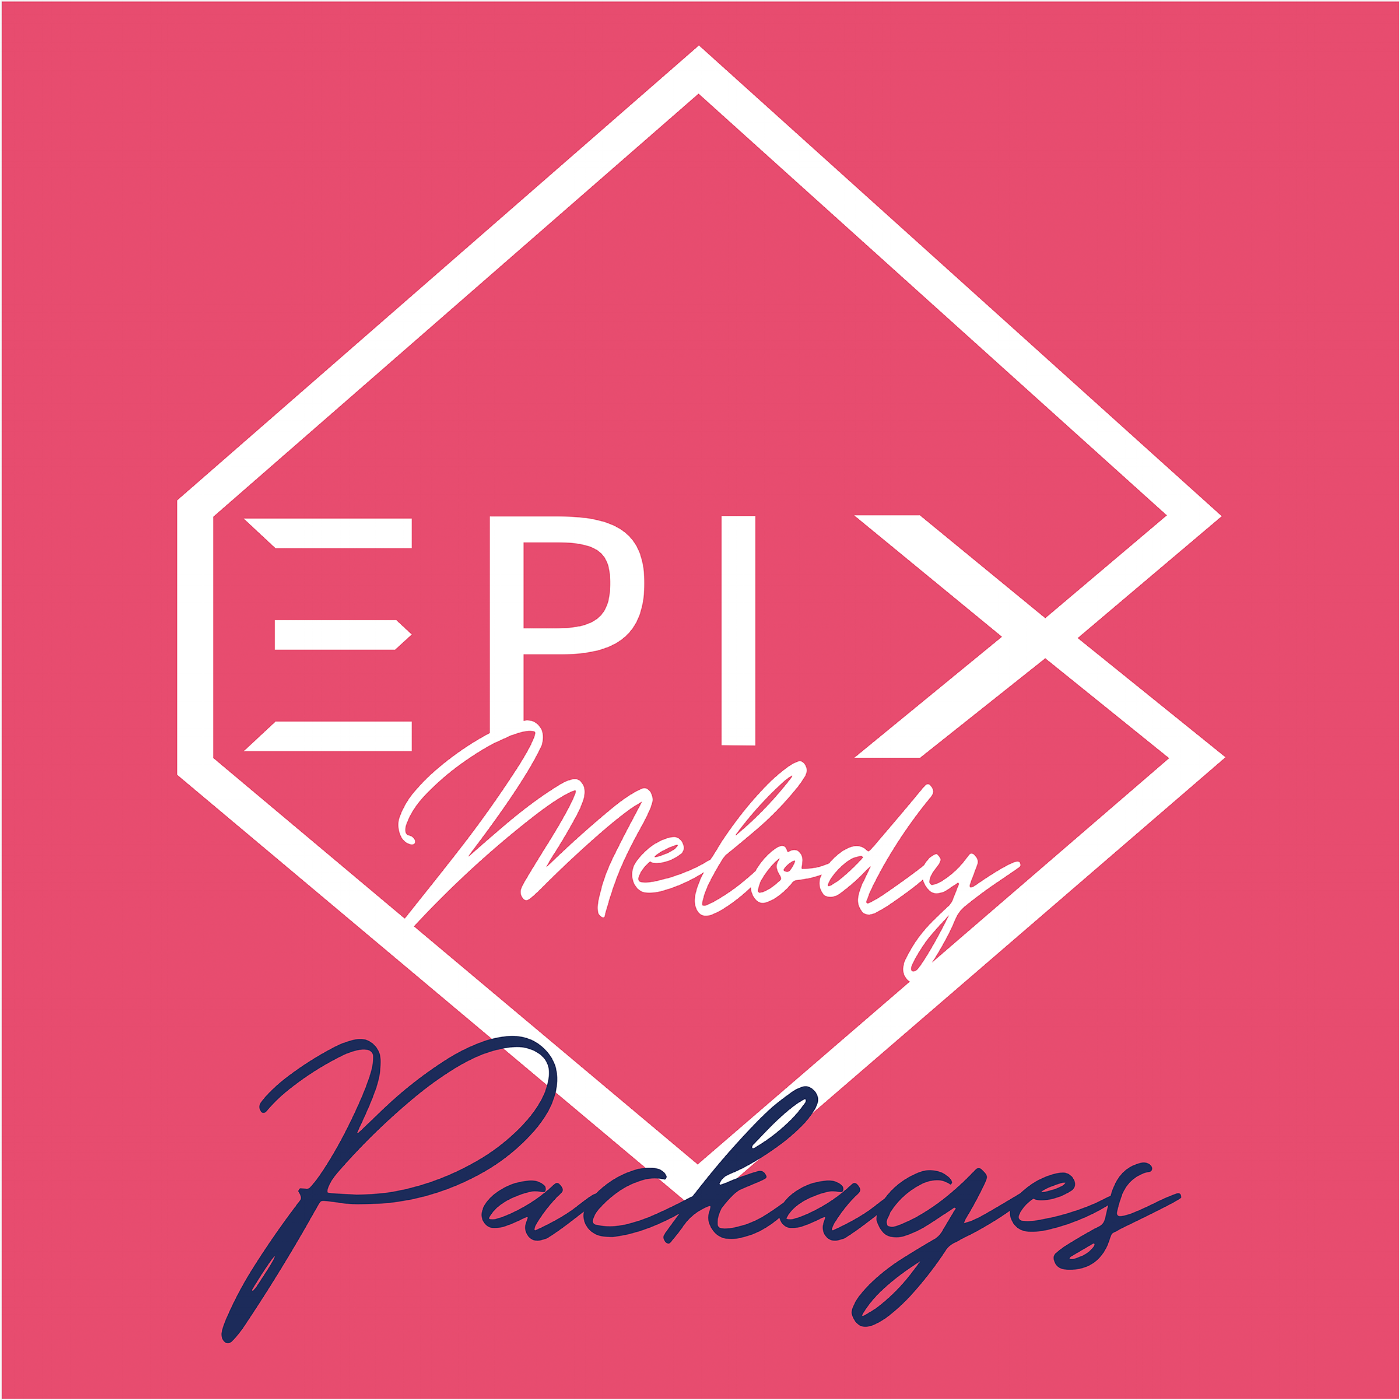 DJ and Photo Booth Packages - Make your Wedding Day or Special Event epic with an any Epix Melody package.All Epix Melody event entertainment packages include; Audio equipment including: speakers, sub-woofer, mics; Lighting & Ambiance equipment; Special rate for additional hours; Custom play list; and Day of event timing consultation.Just pick your favorite package and get ready to party the night (or day) away.